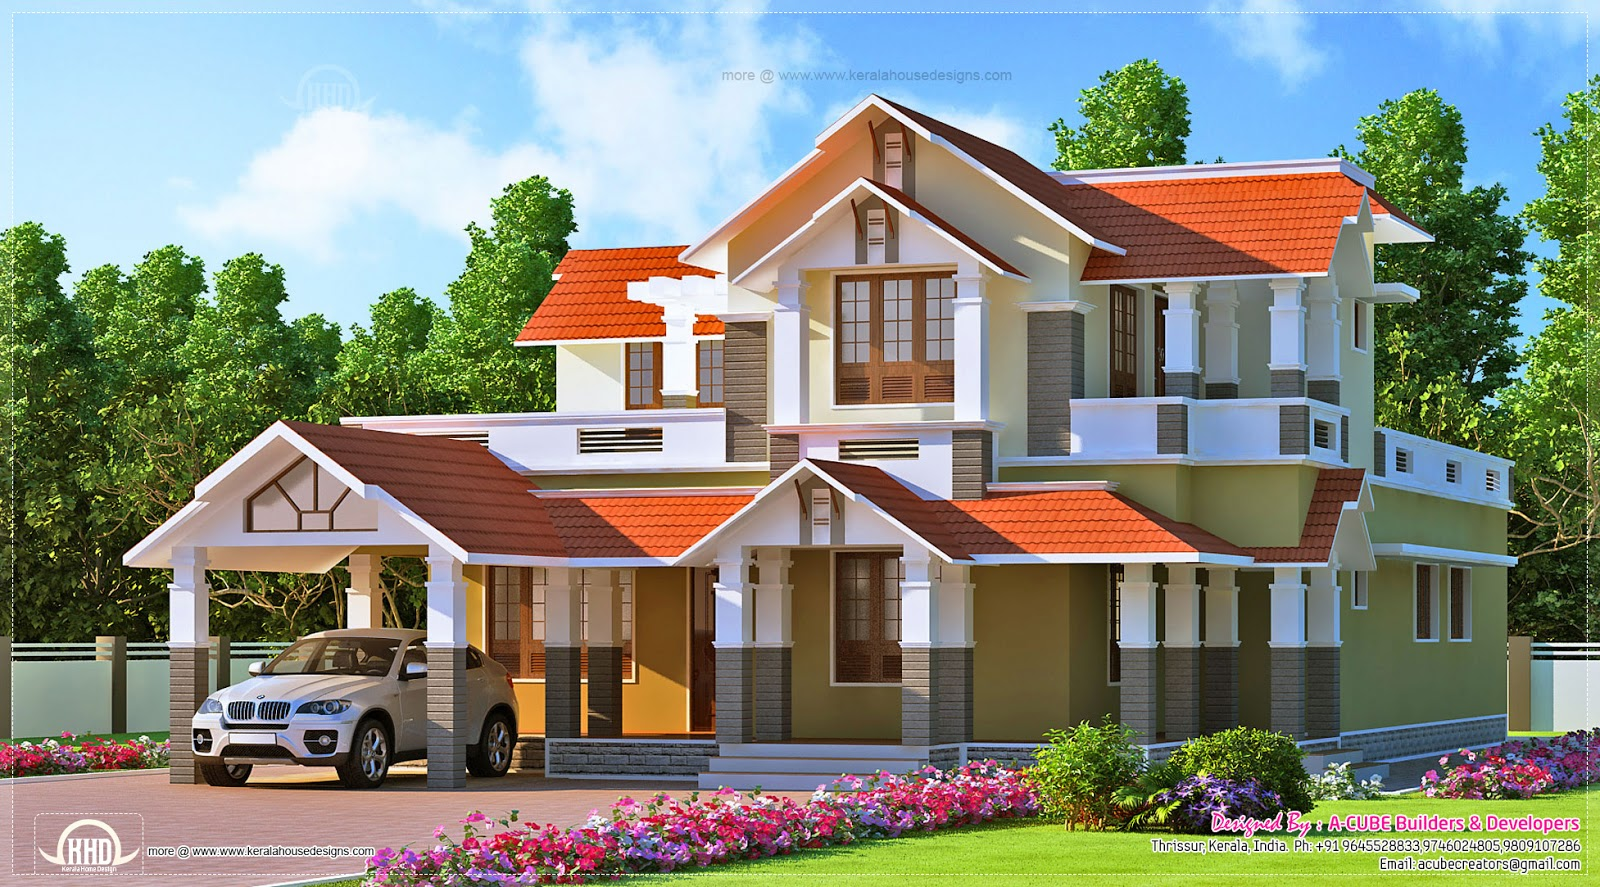 Eco friendly houses kerala style dream home design Dreamhome com